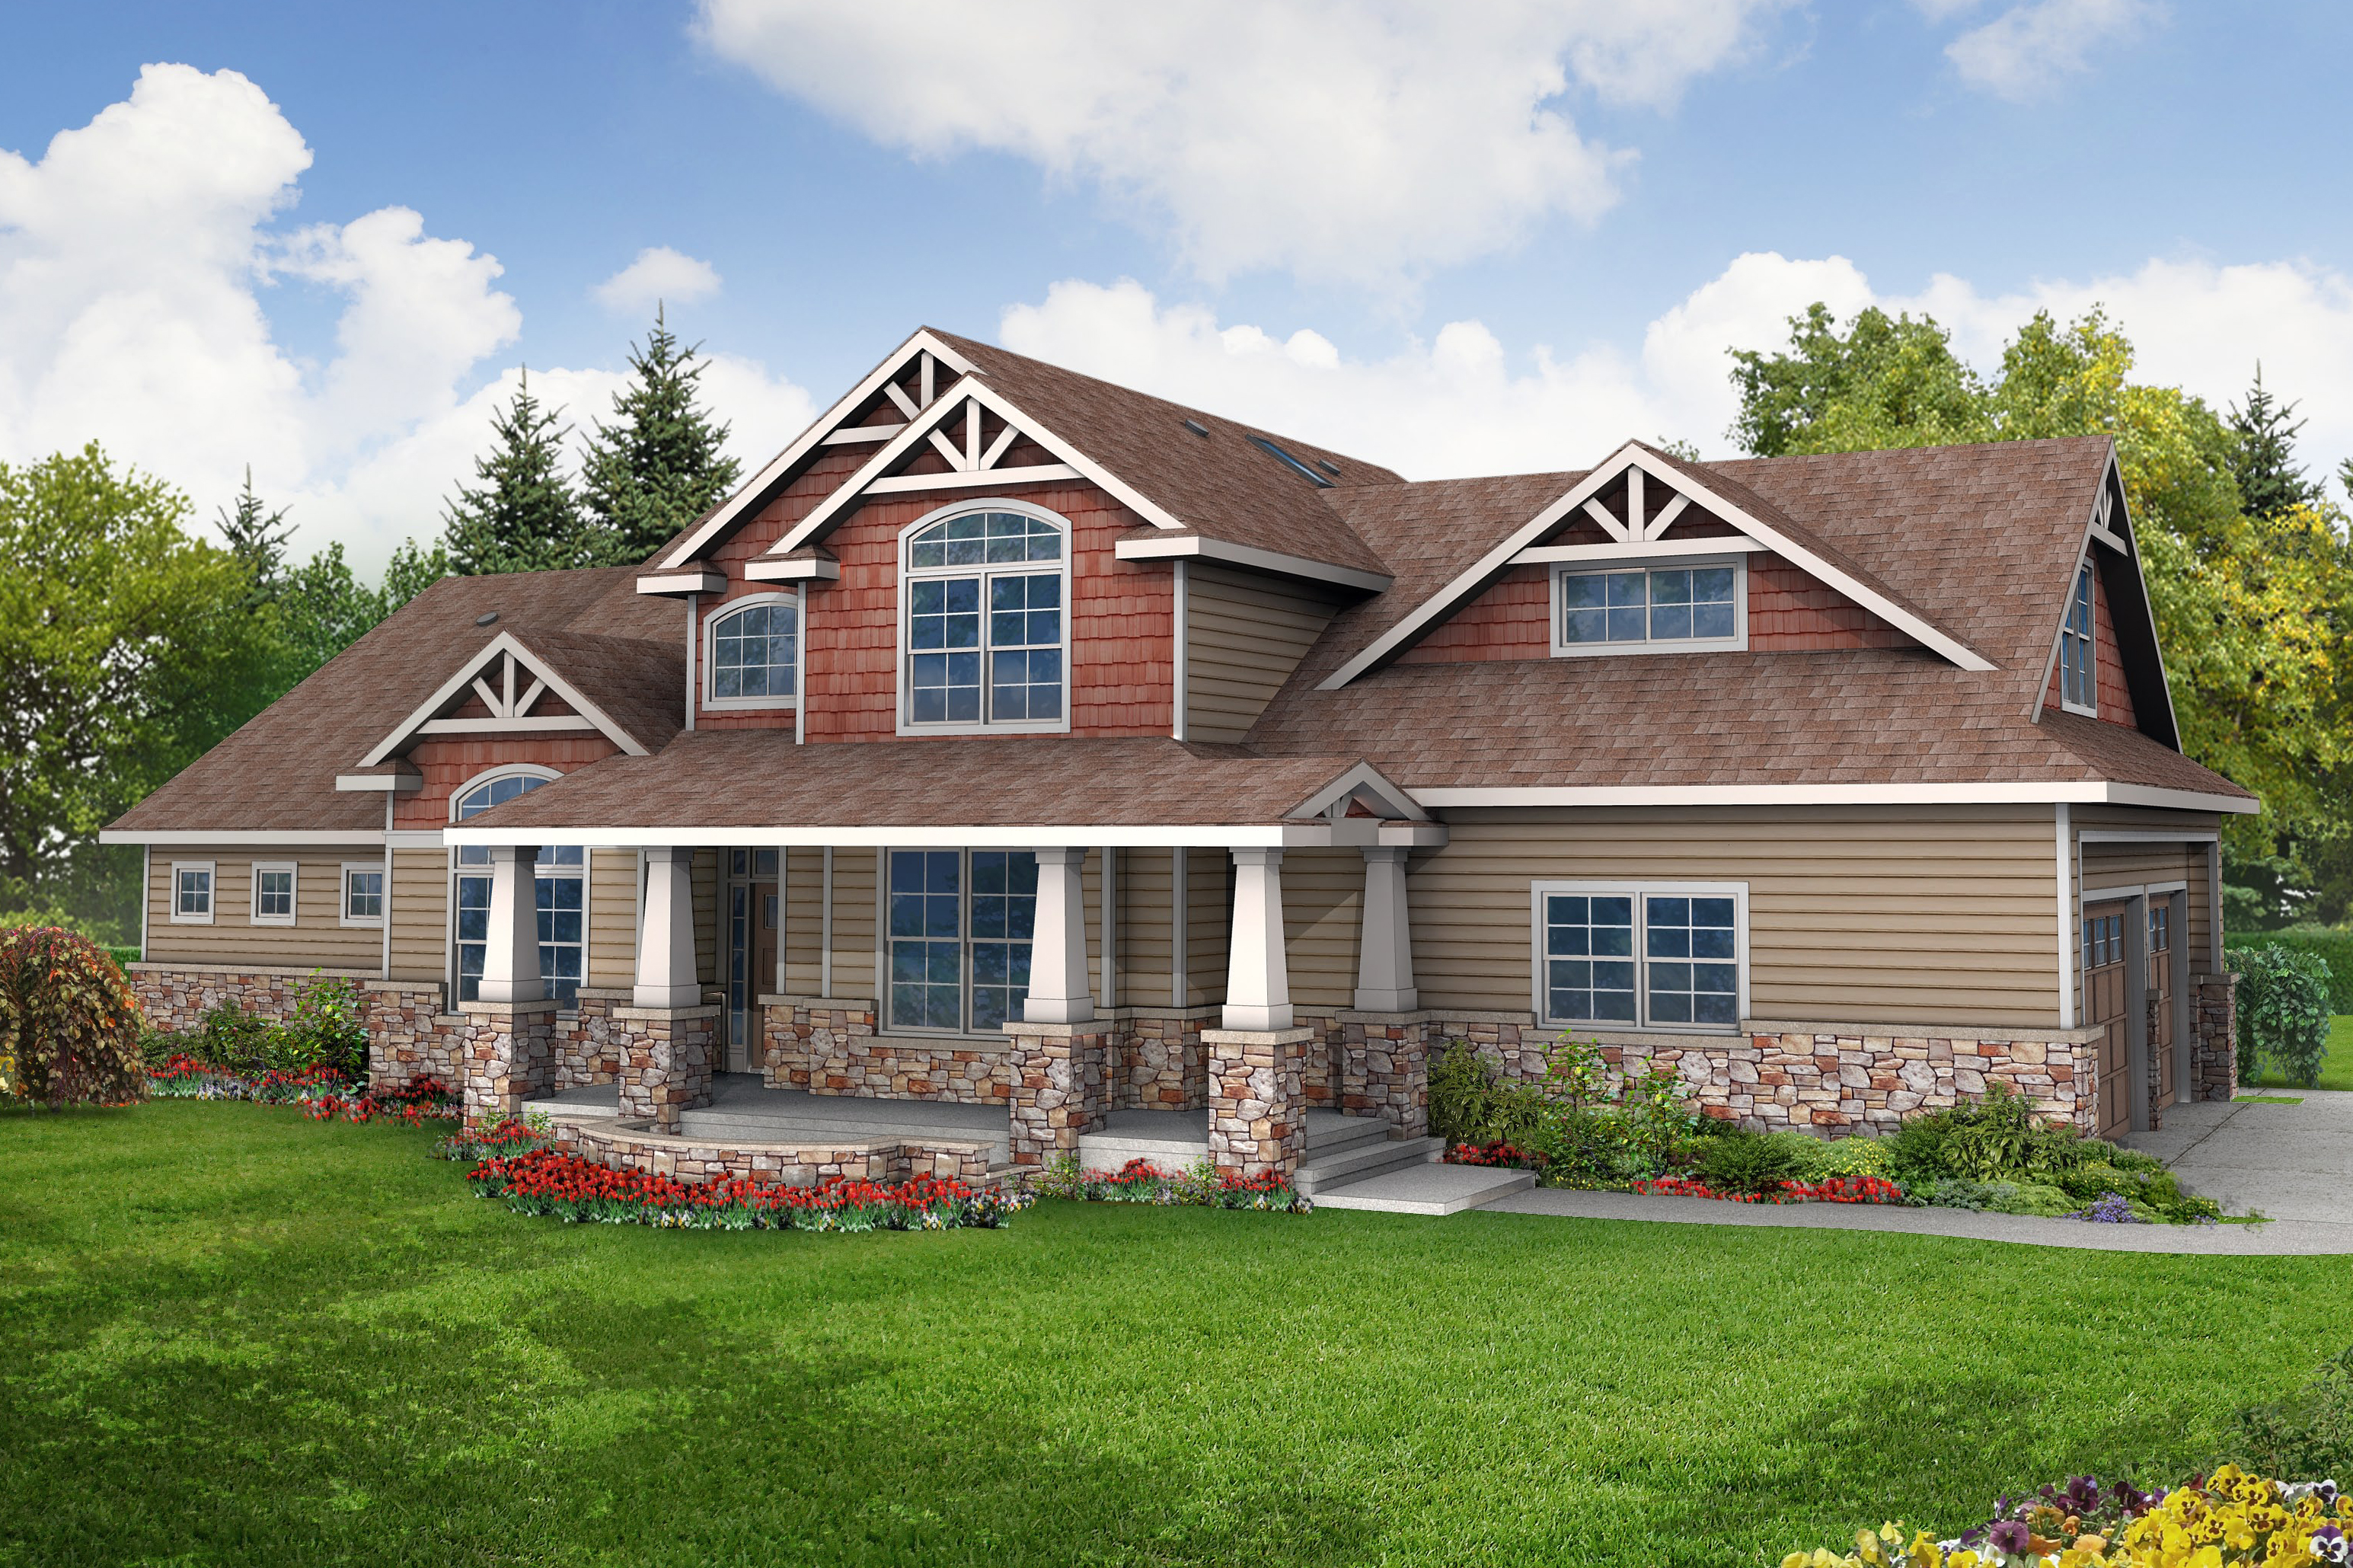 Craftsman house plans craftsman home plans craftsman for Home design picture gallery